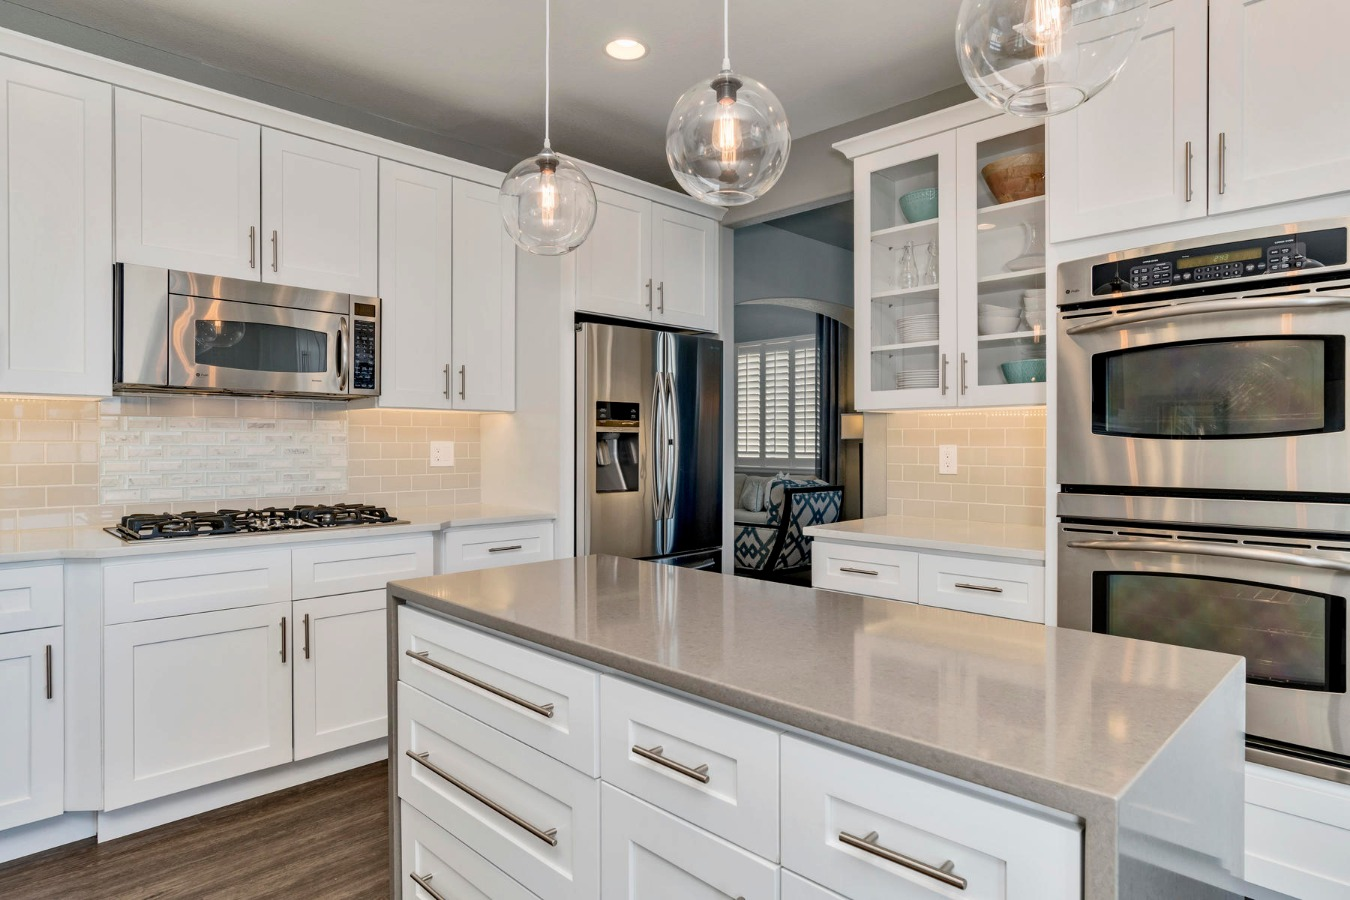 Stainless Appliances with Gas Cooktop